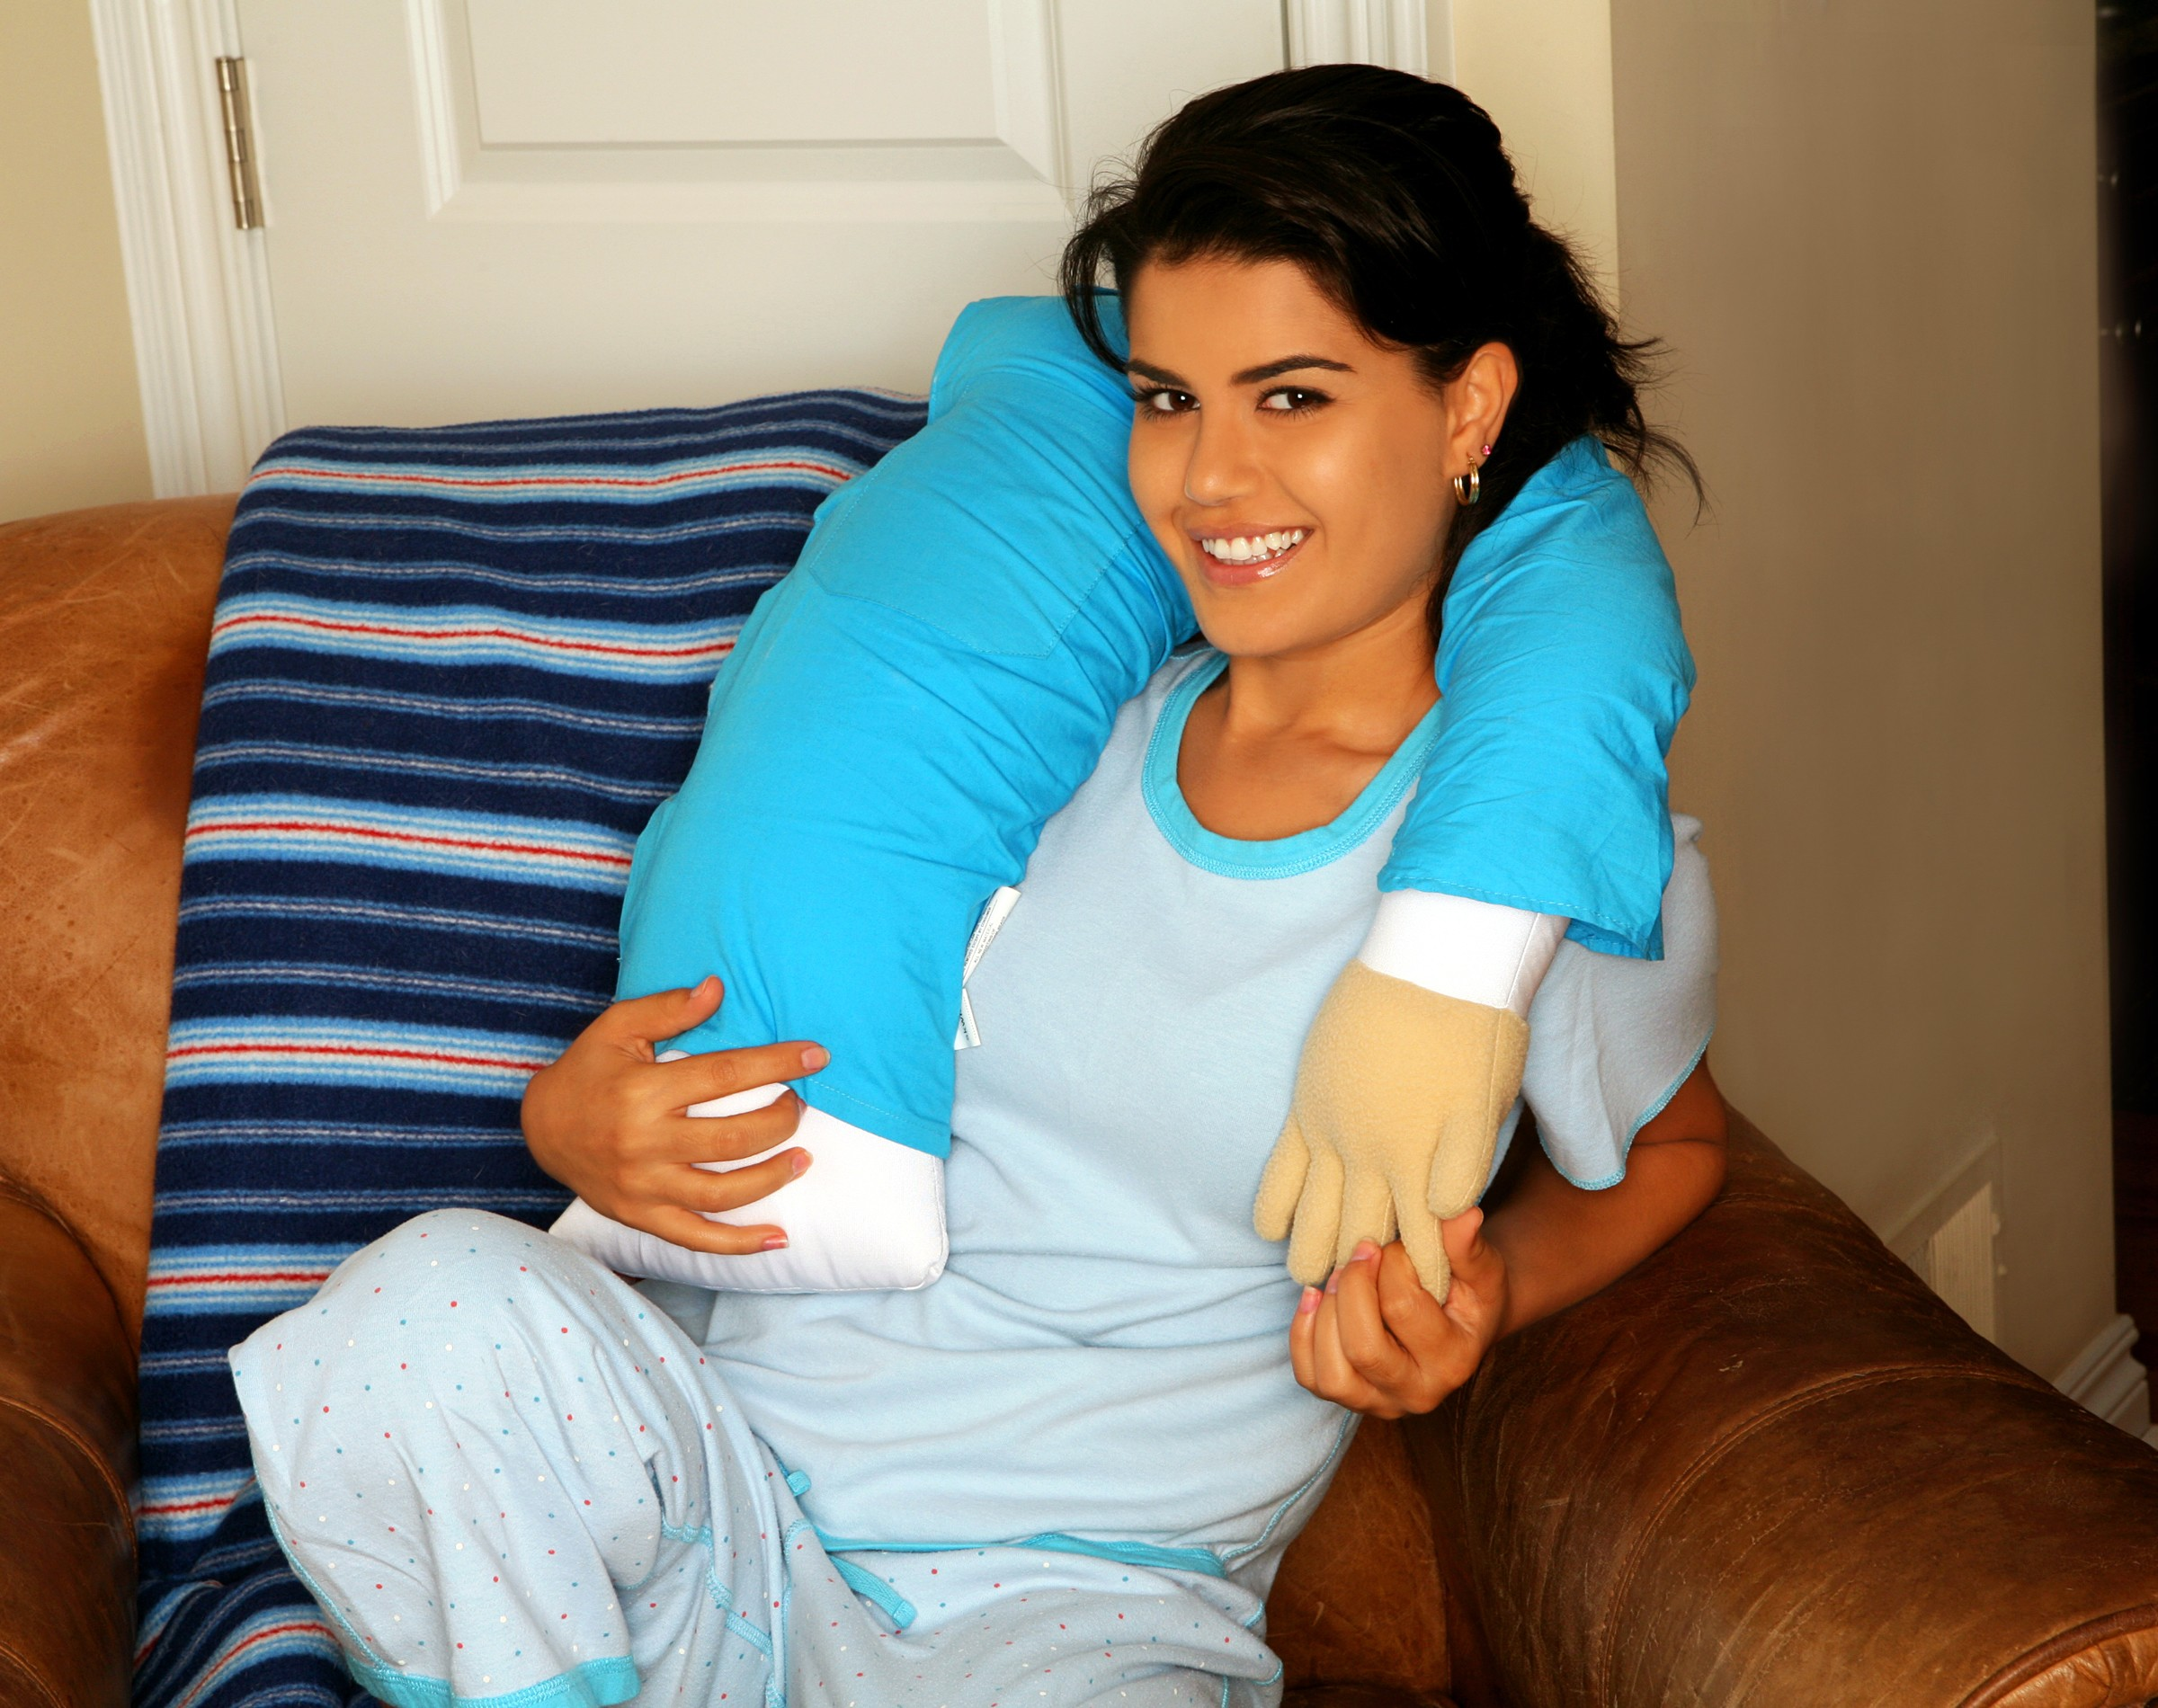 pillow that looks like a man